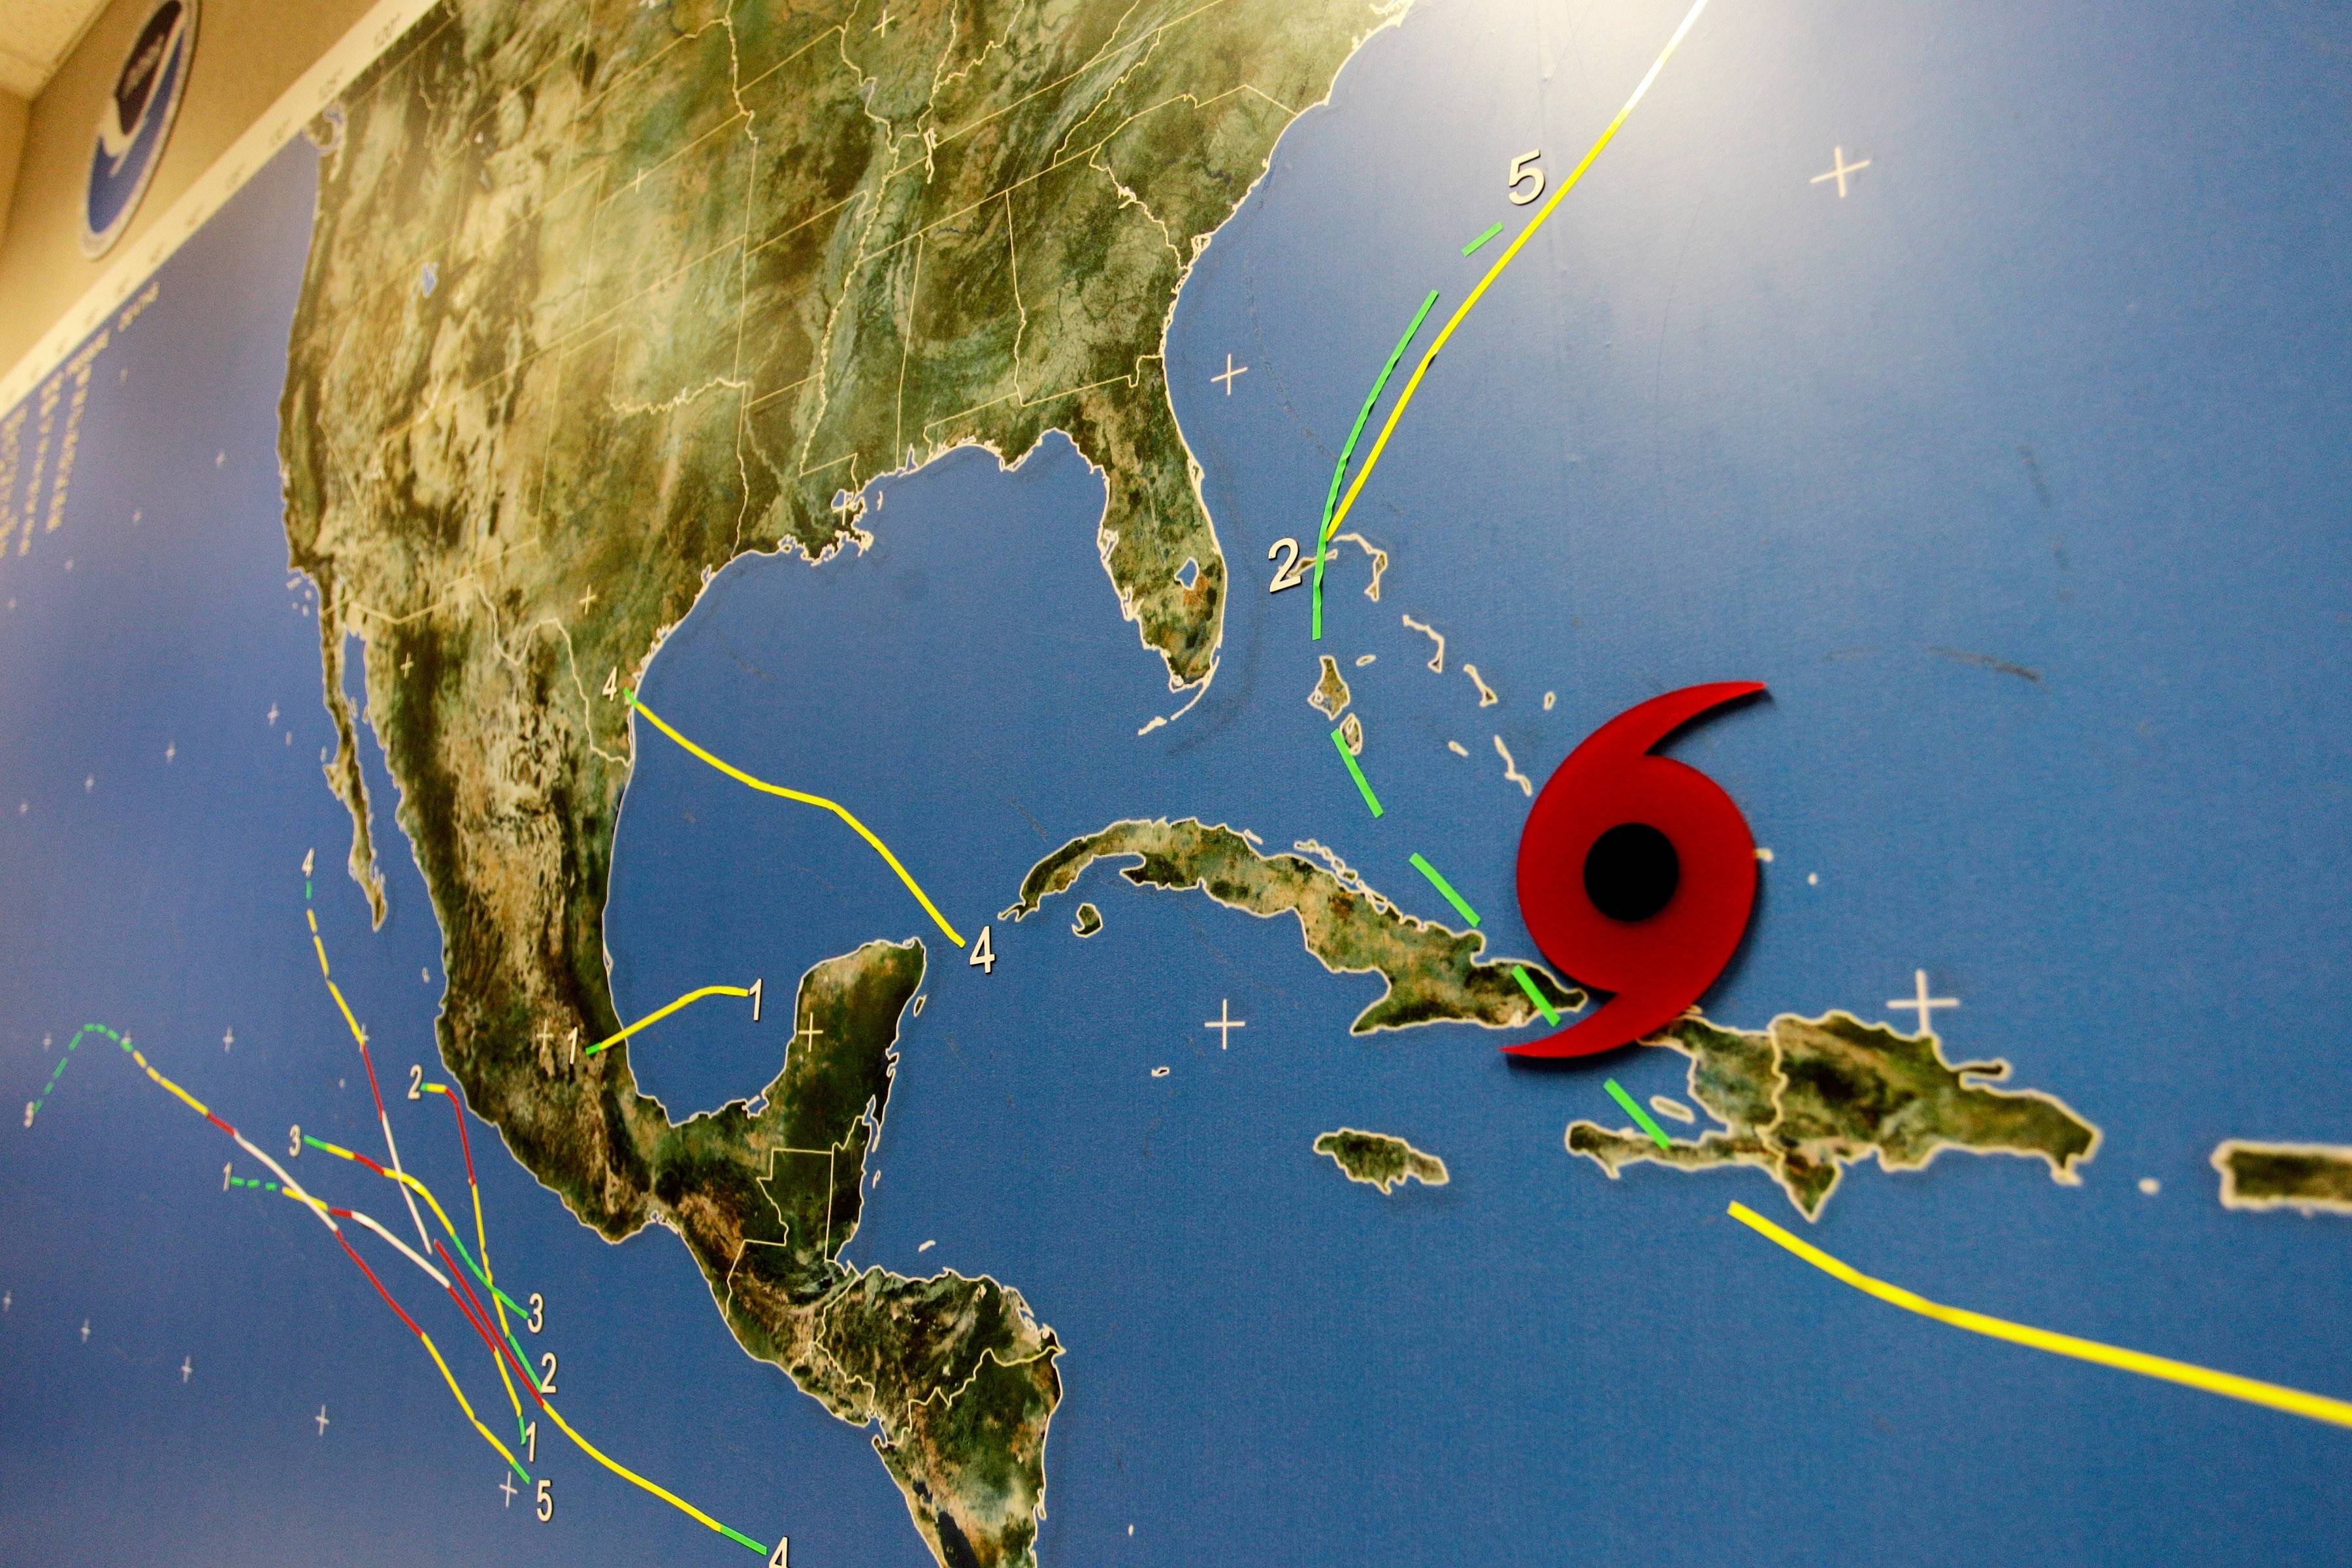 A red disc on a Miami's National Hurricane Center wall map shows the location of Hurricane Irene as it passes through the Bahamas Wednesday.